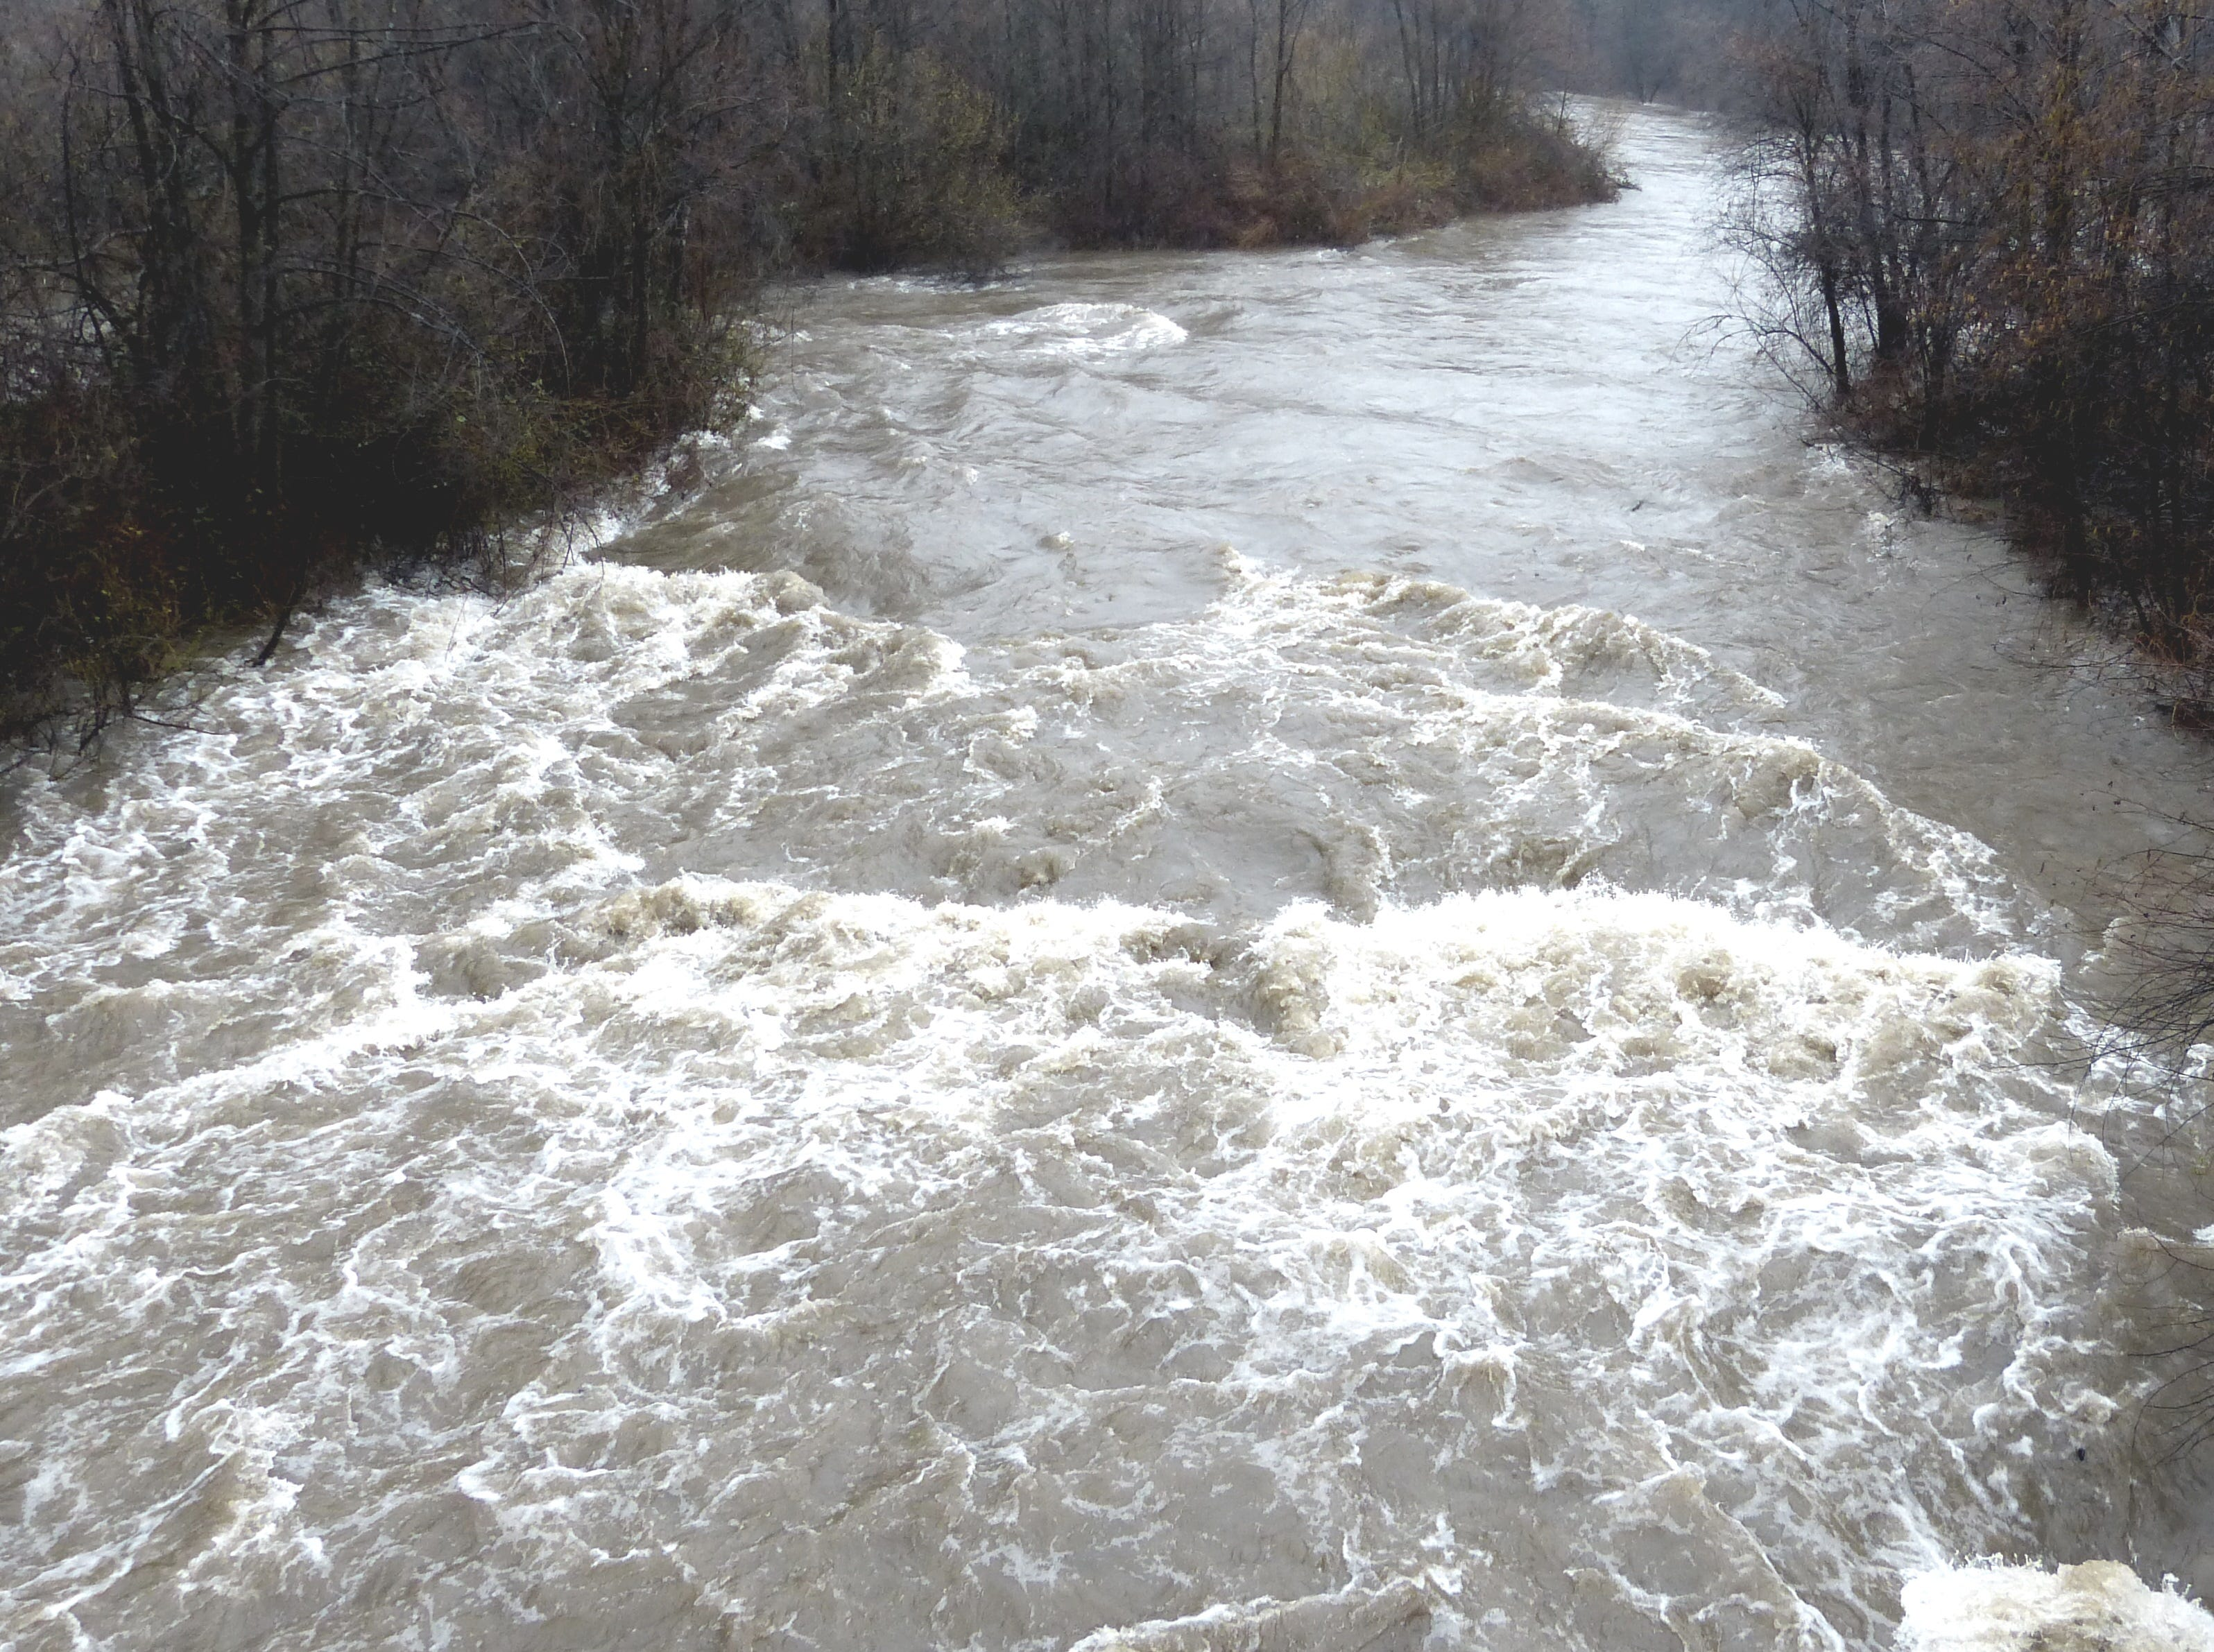 Clear Creek below Whiskeytown Dam was running high and fast on Tuesday.